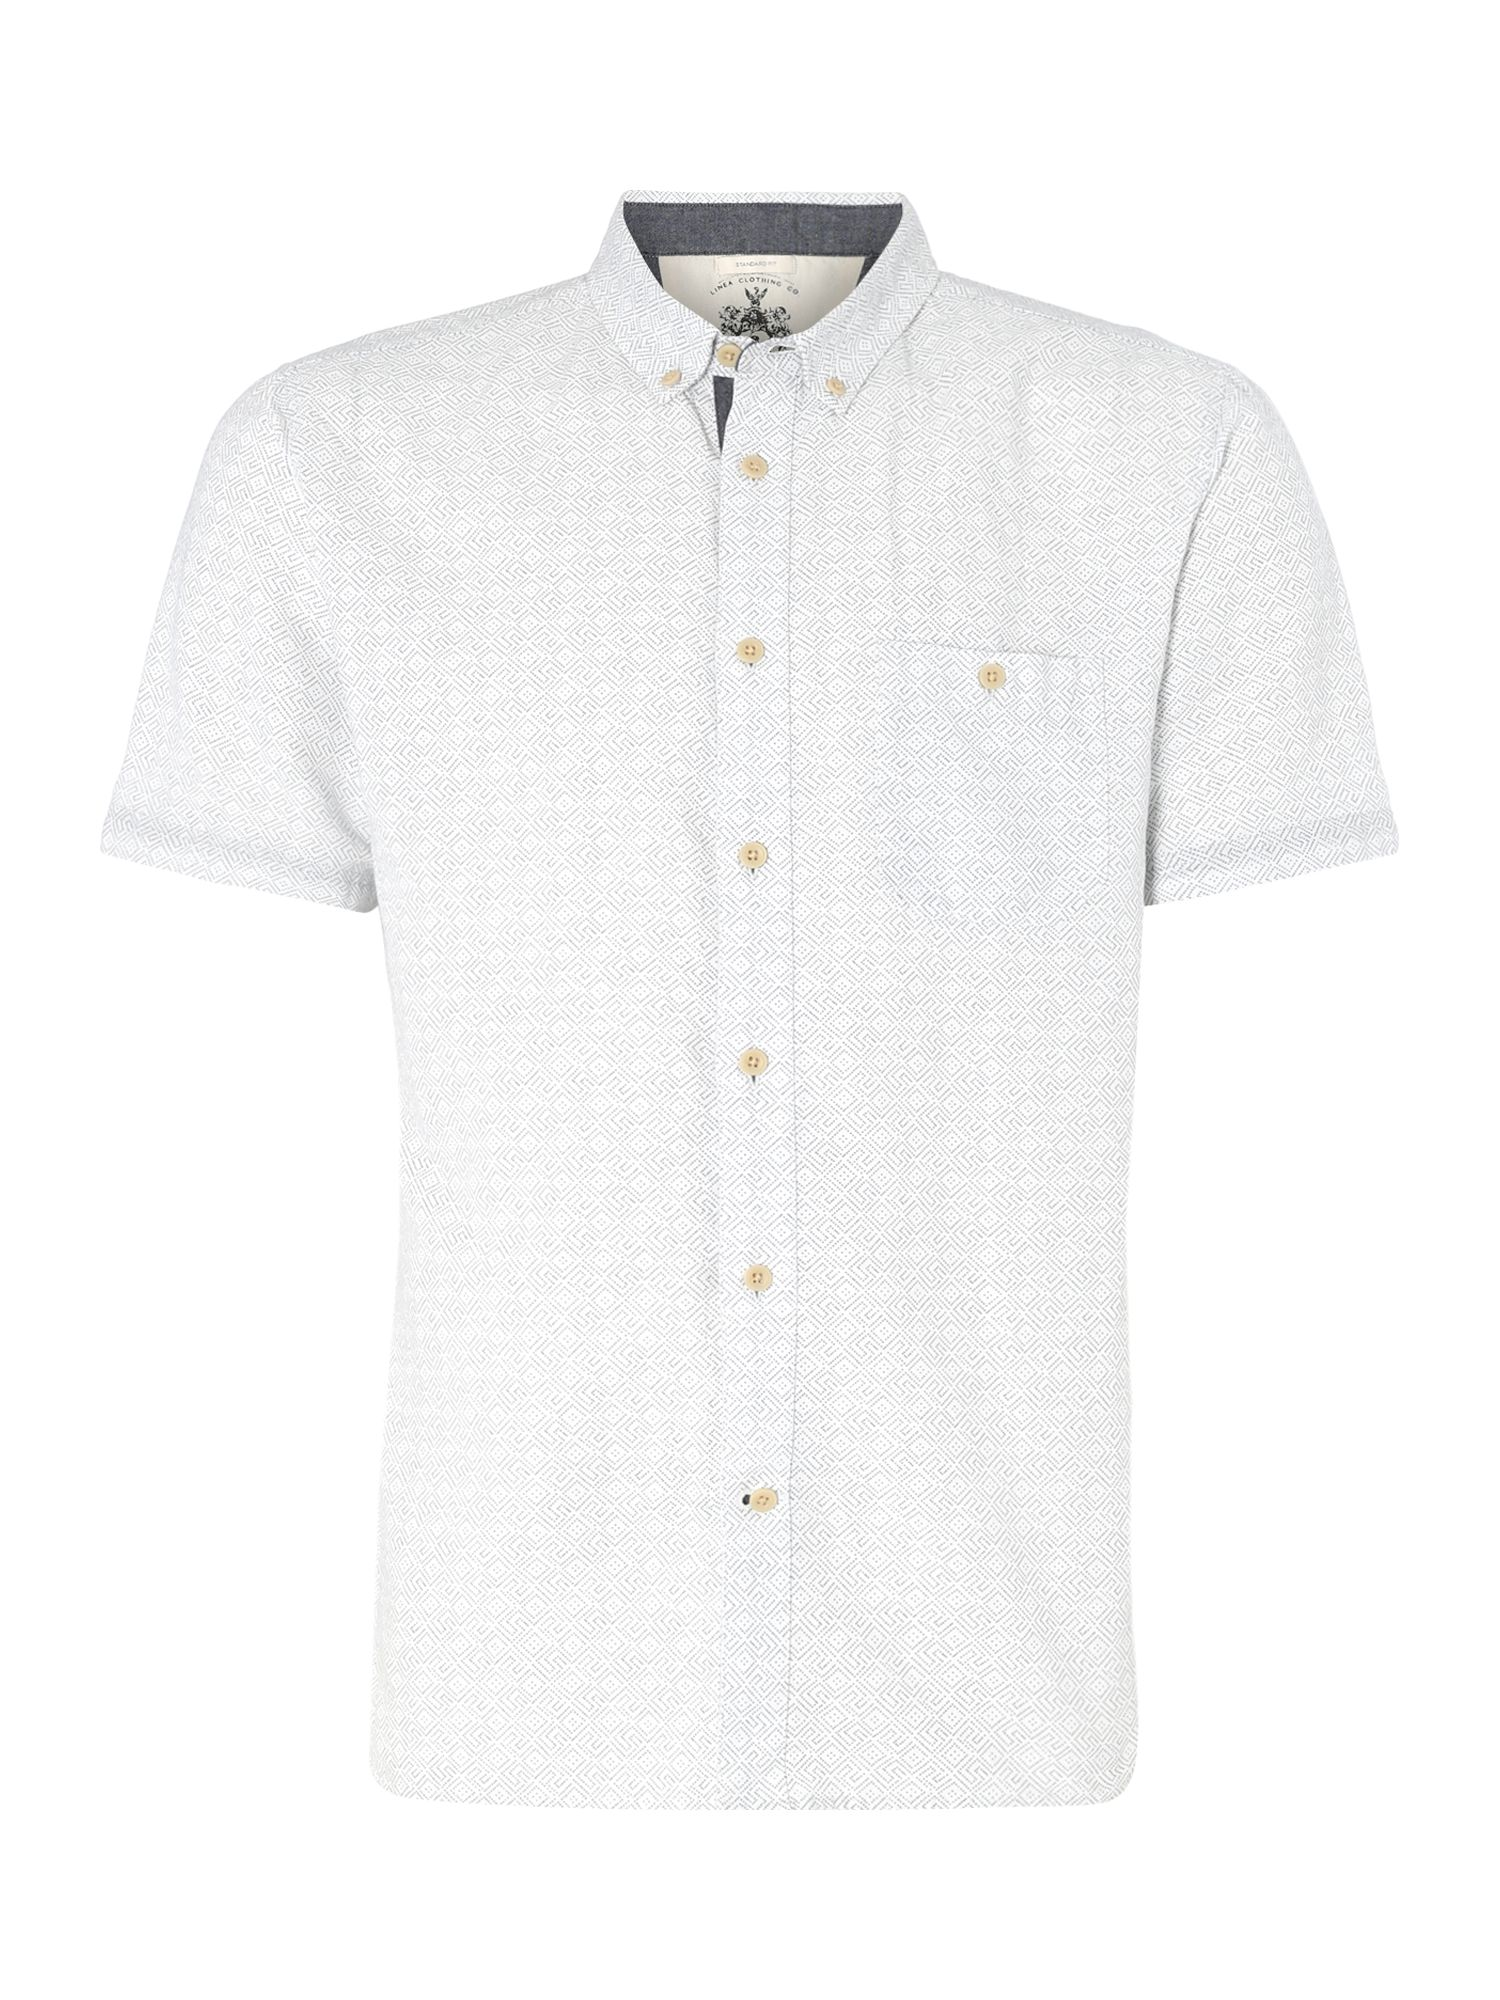 fredrick geometric print short sleeved shirt